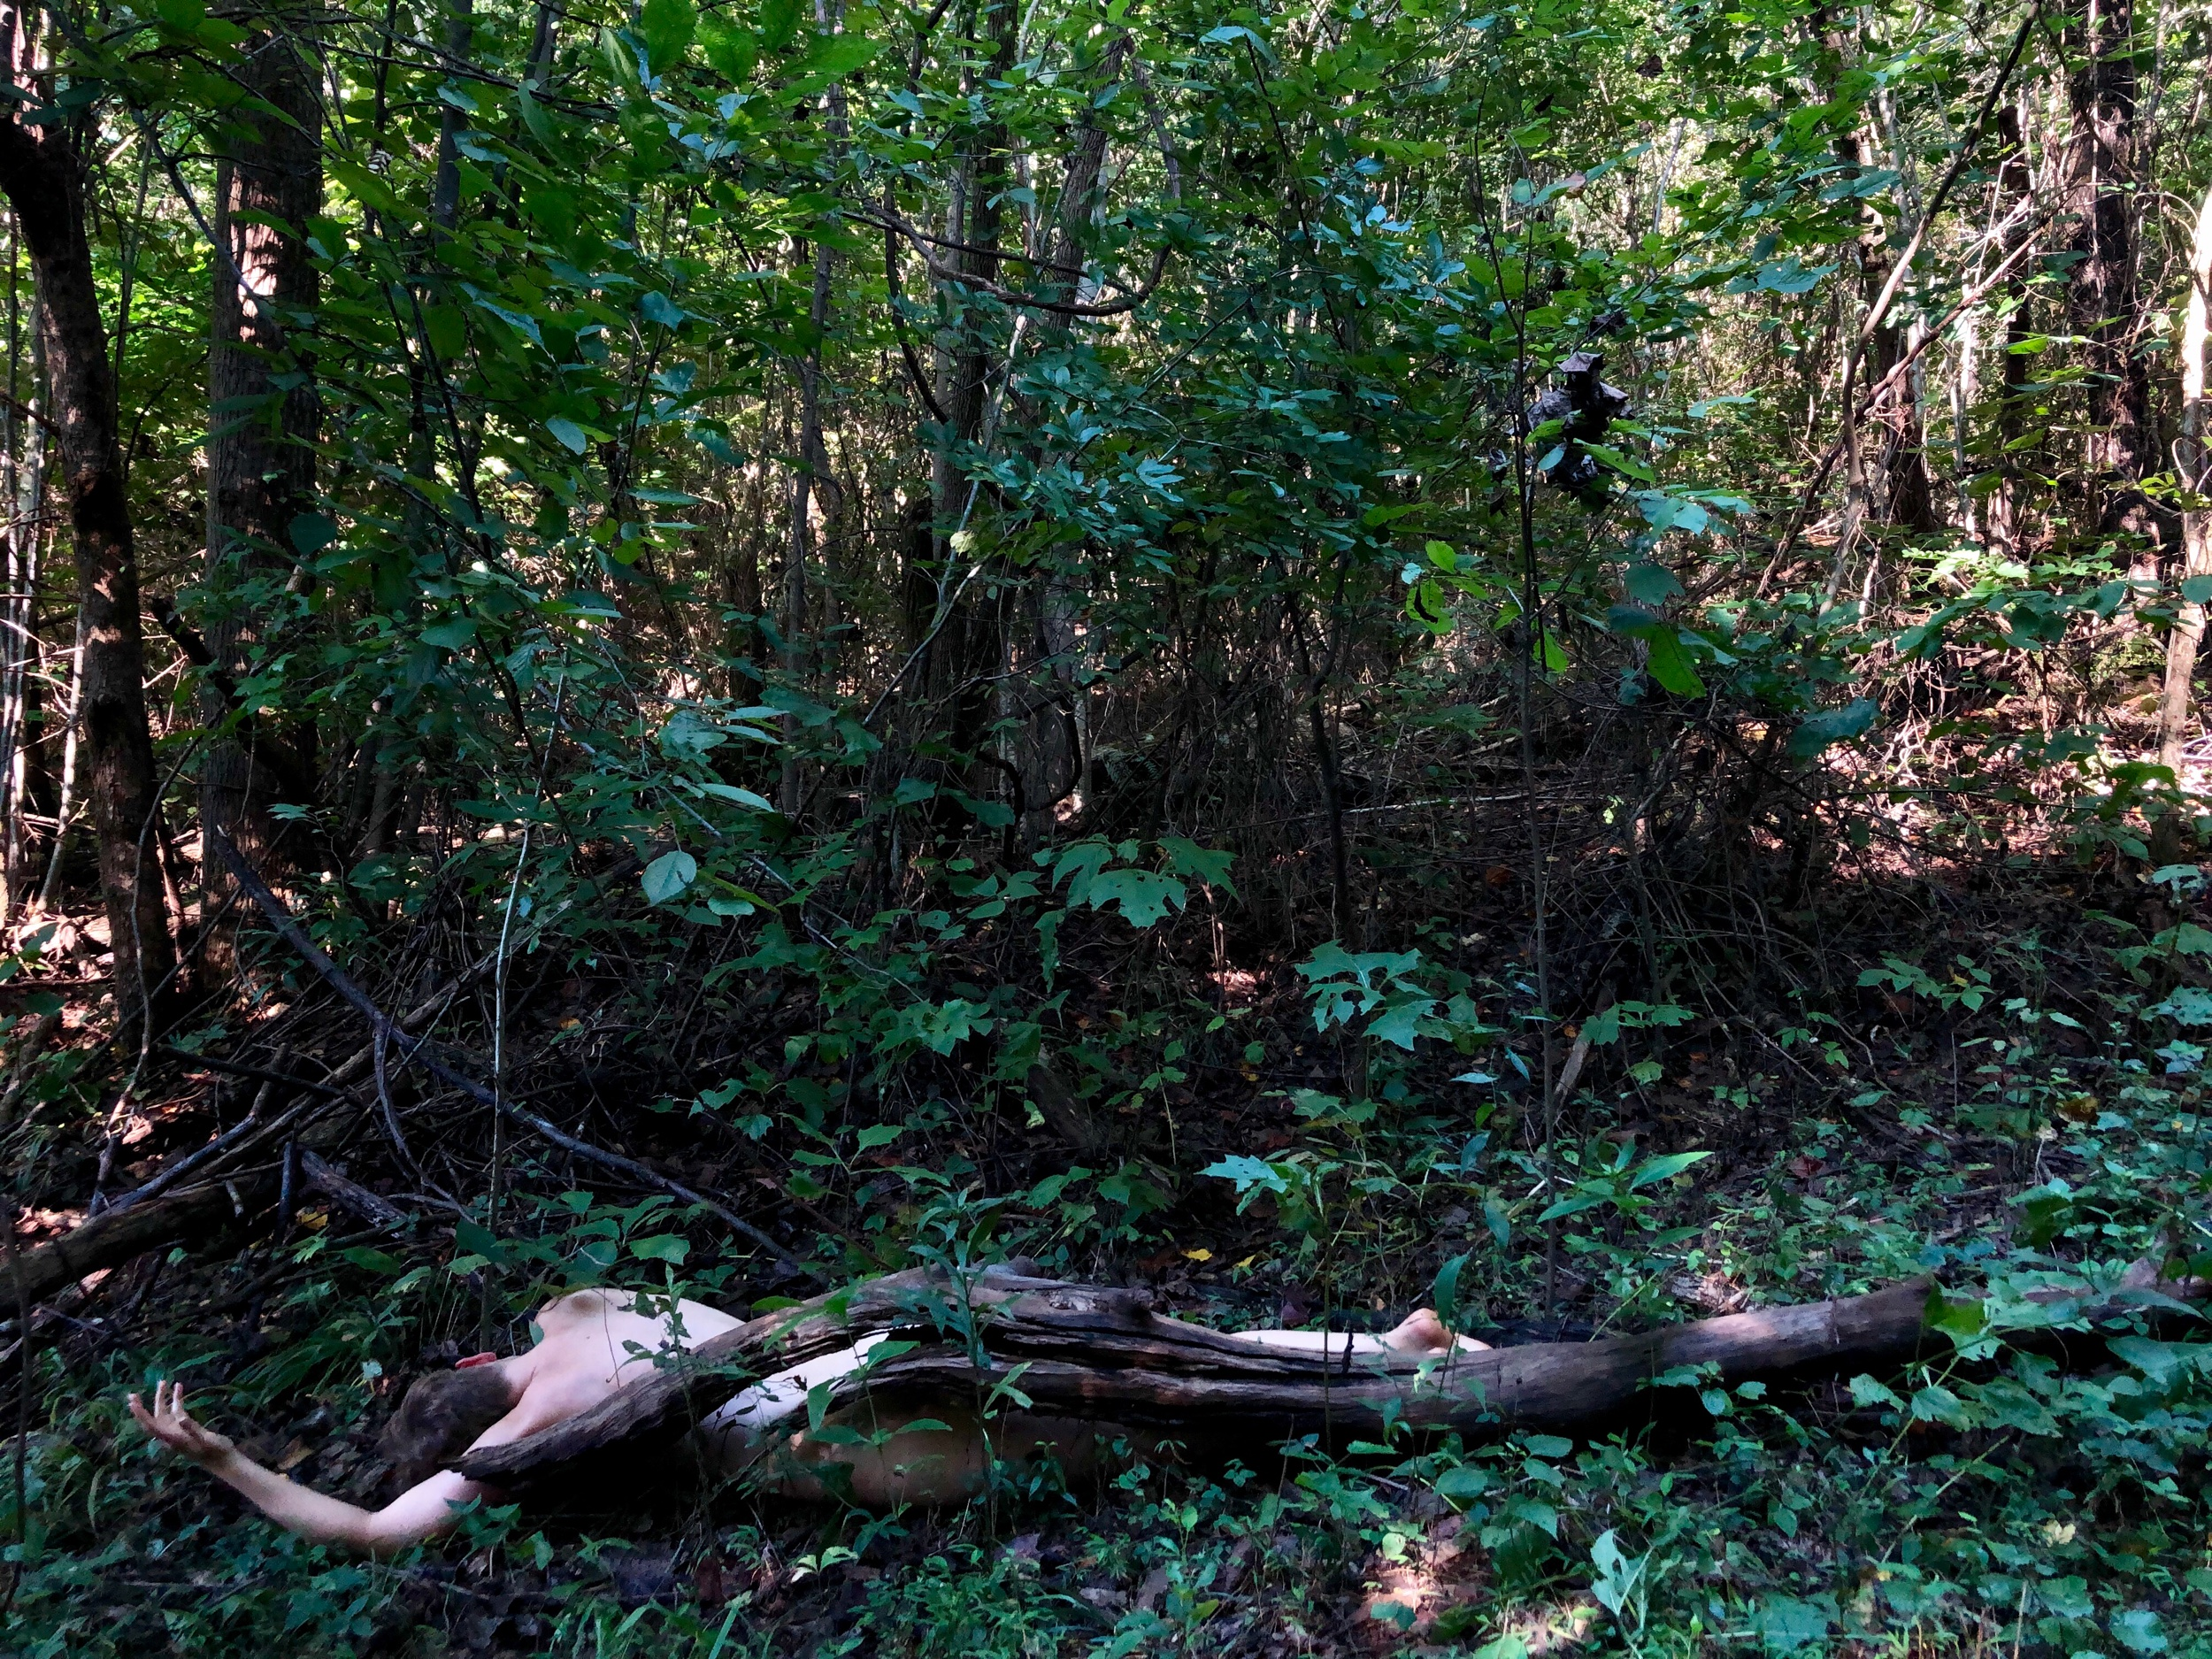 Bodies in the Landscape, August 2019